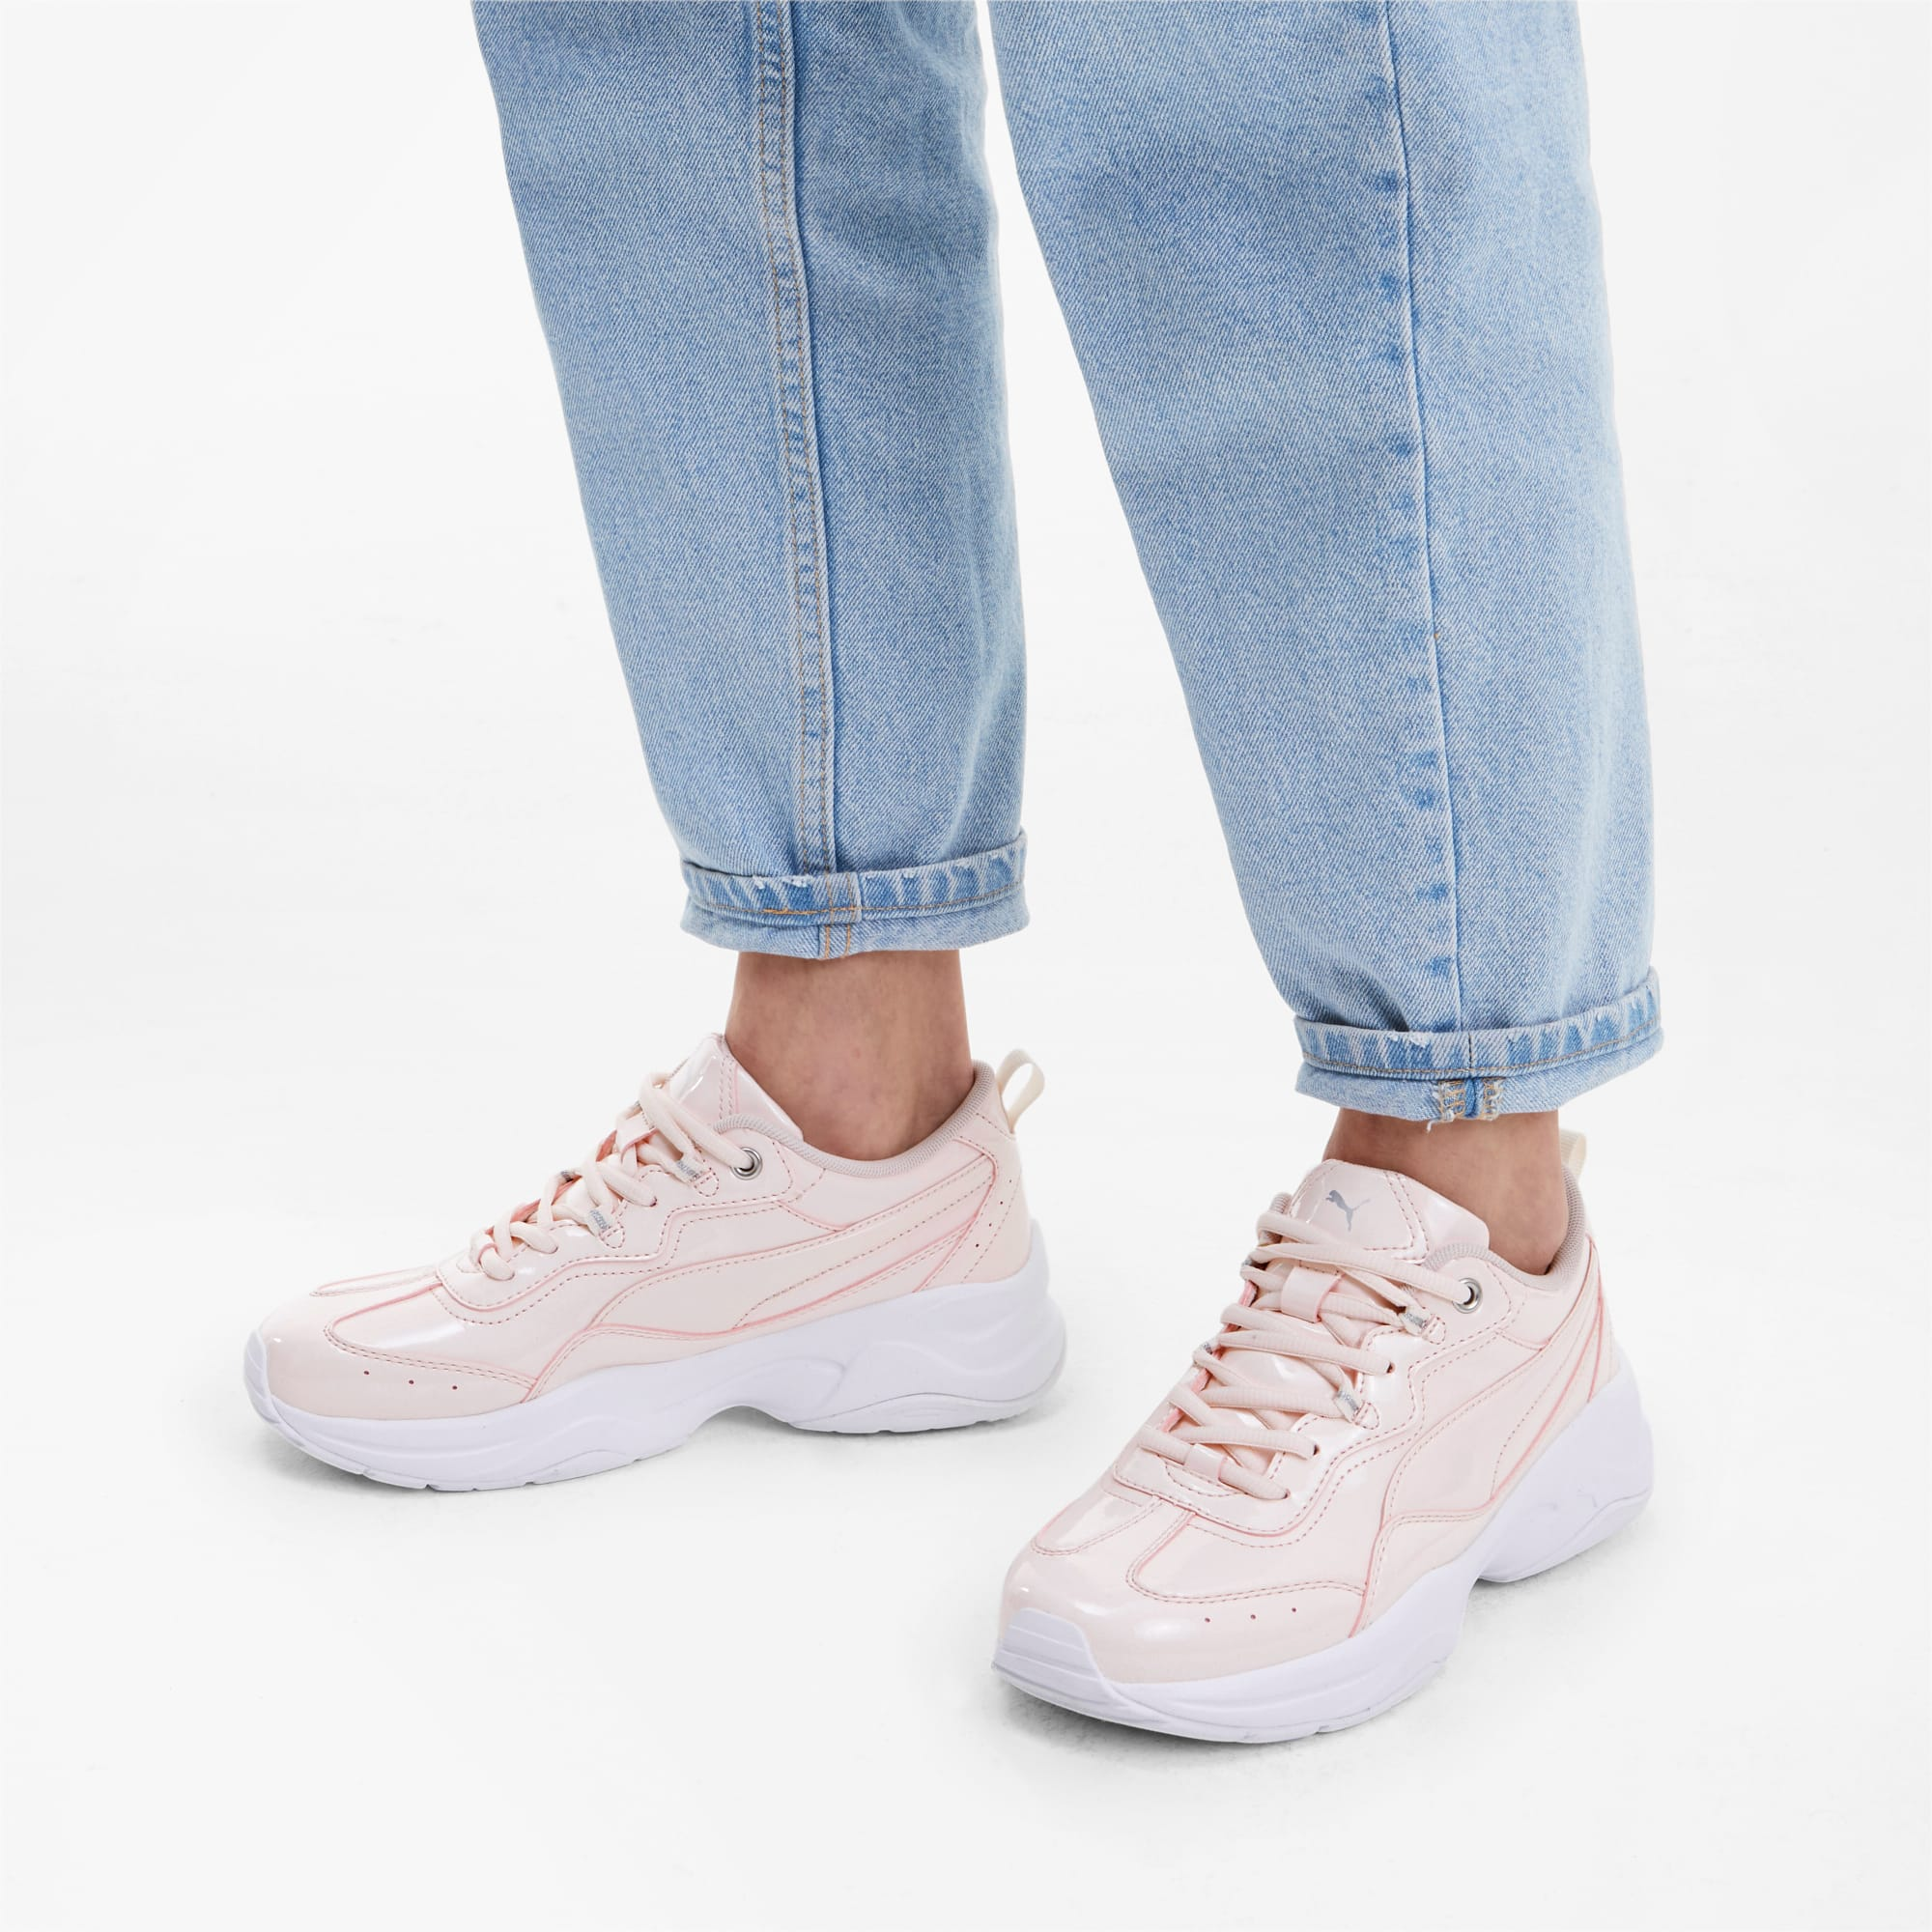 Cilia Women's Trainers | Women, Trainers, Toe shoes